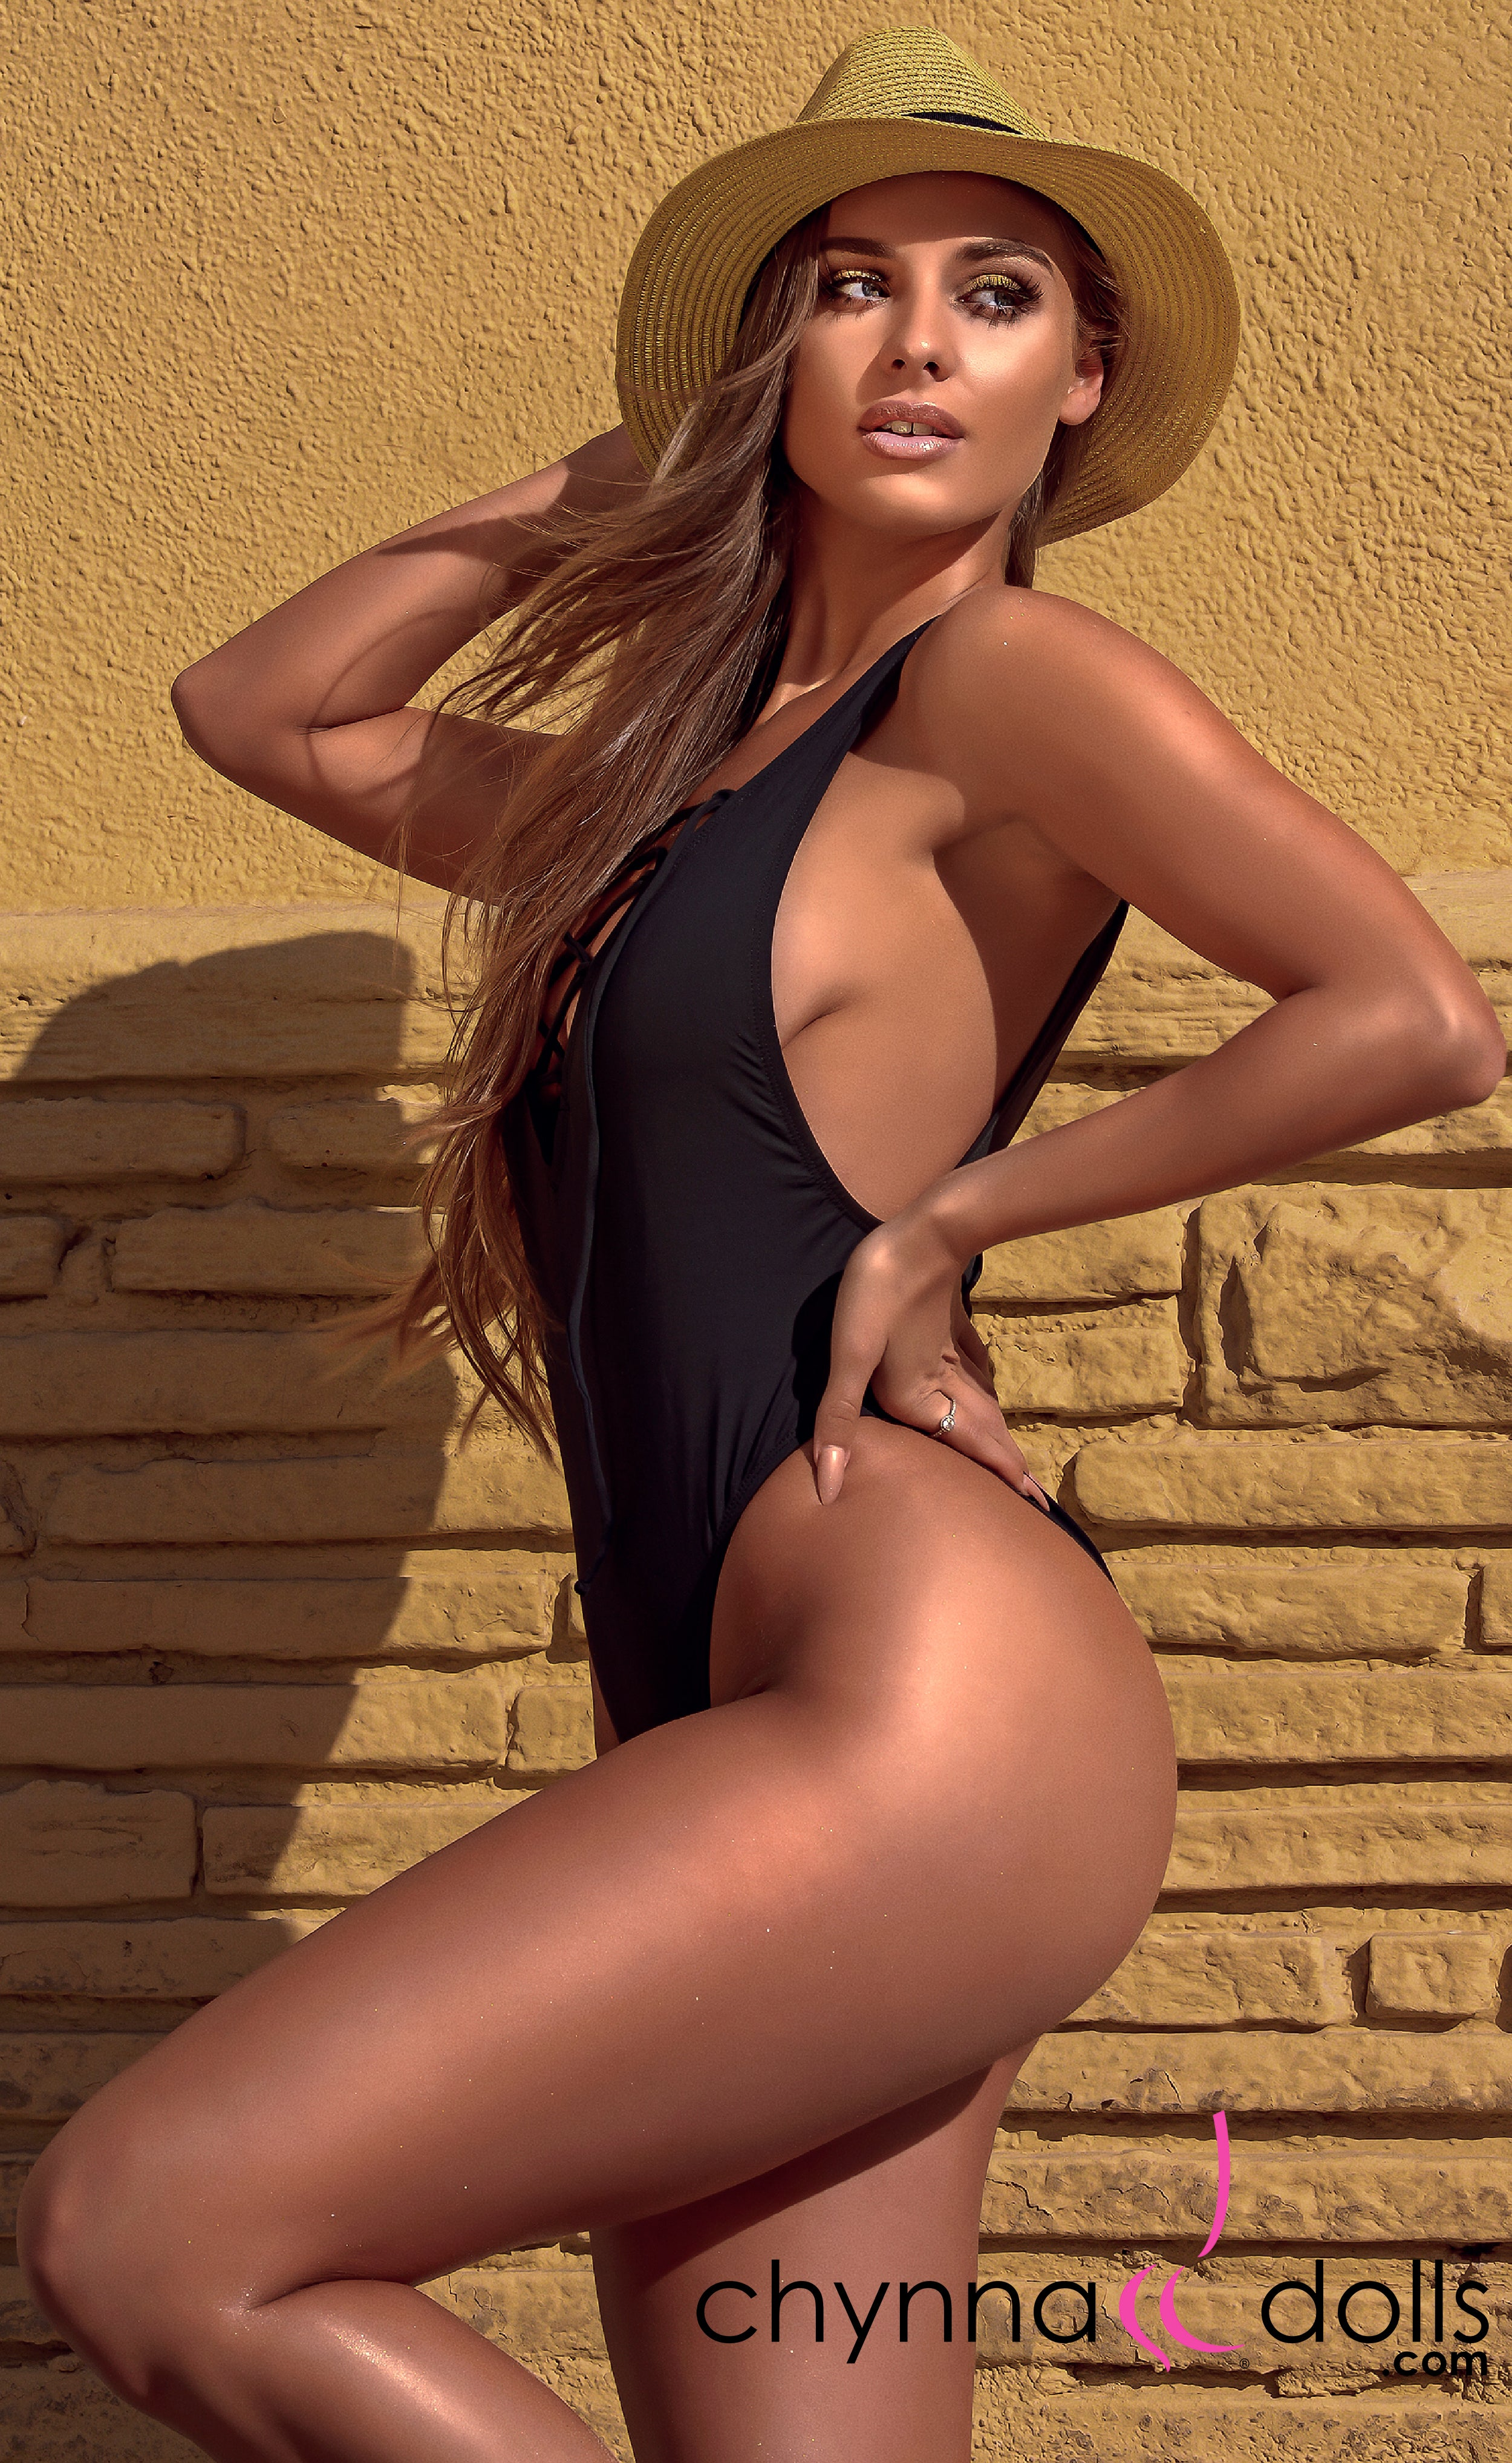 CROATIA: High Cut One Piece Bathing Suit w/ Lace Up Front in Black - Chynna Dolls Swimwear